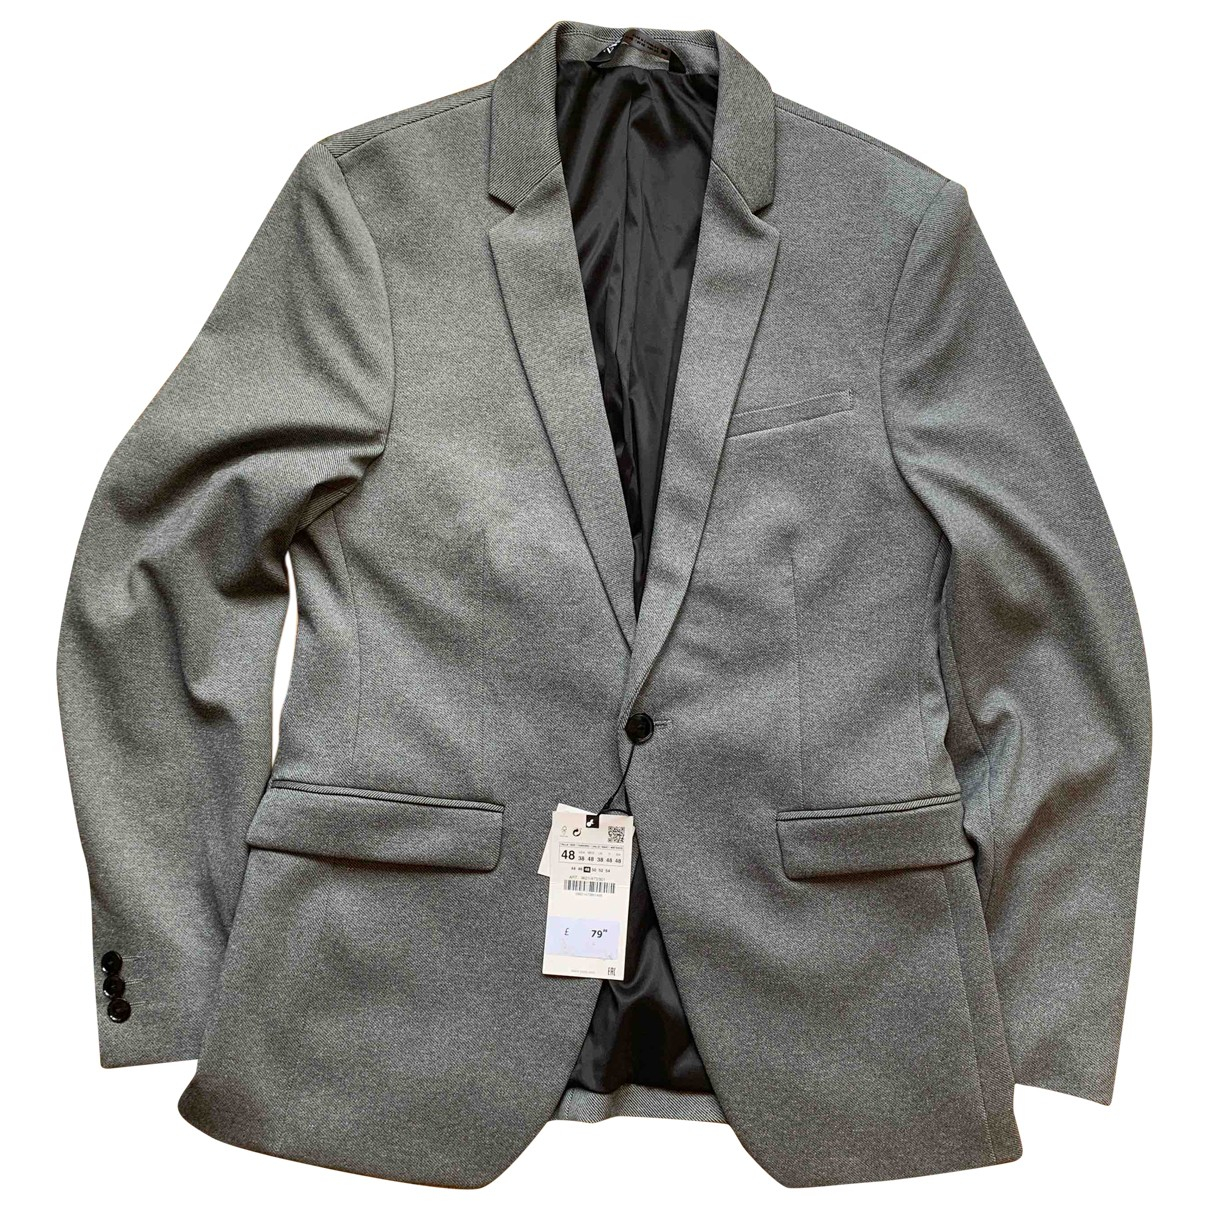 Zara N Grey Suits for Men 38 UK - US